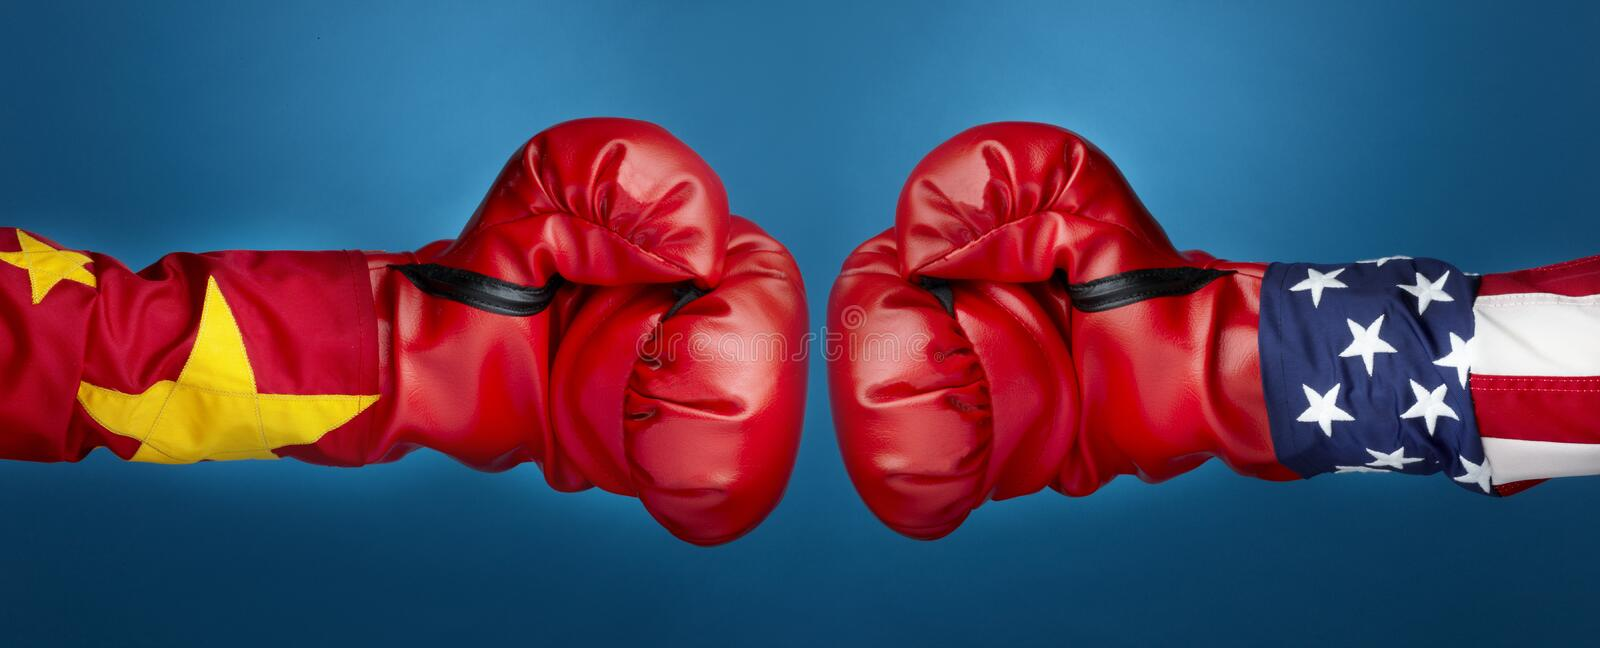 Download China Vs. USA Boxing stock image. Image of knockout, bright - 17779203